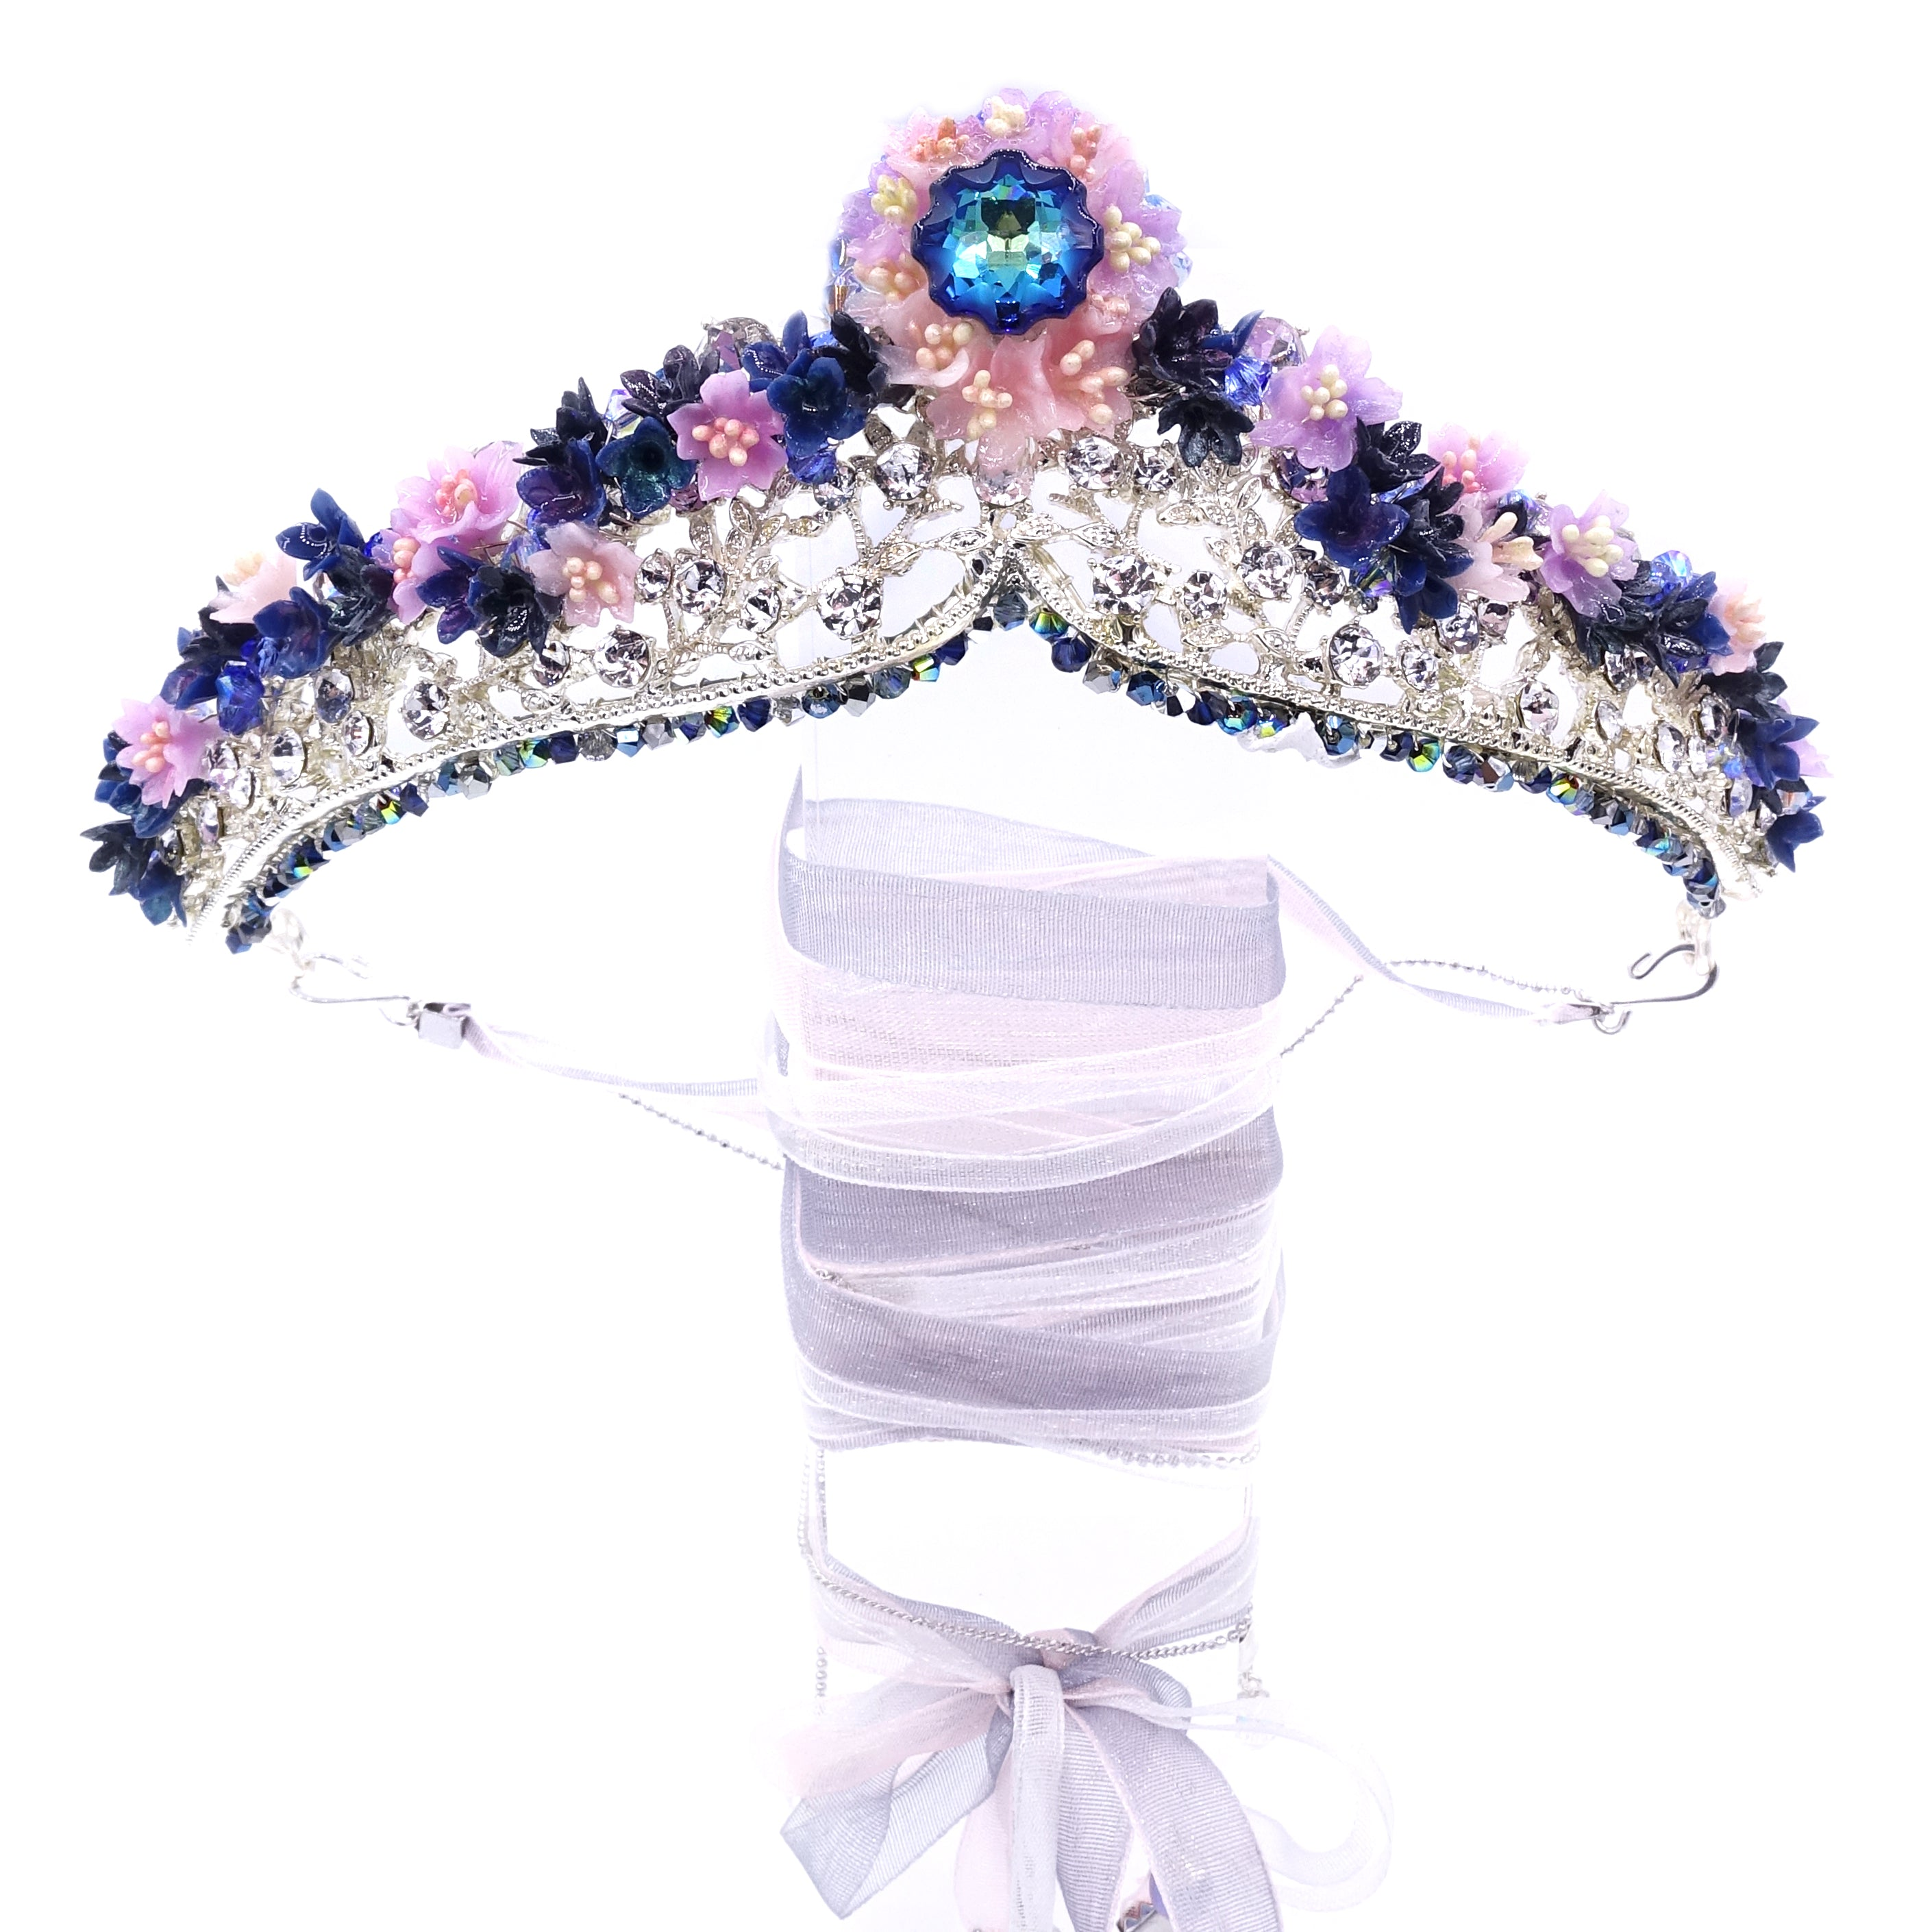 SAKURA COLLECTION Night-Sakura Floral Crystal Crown